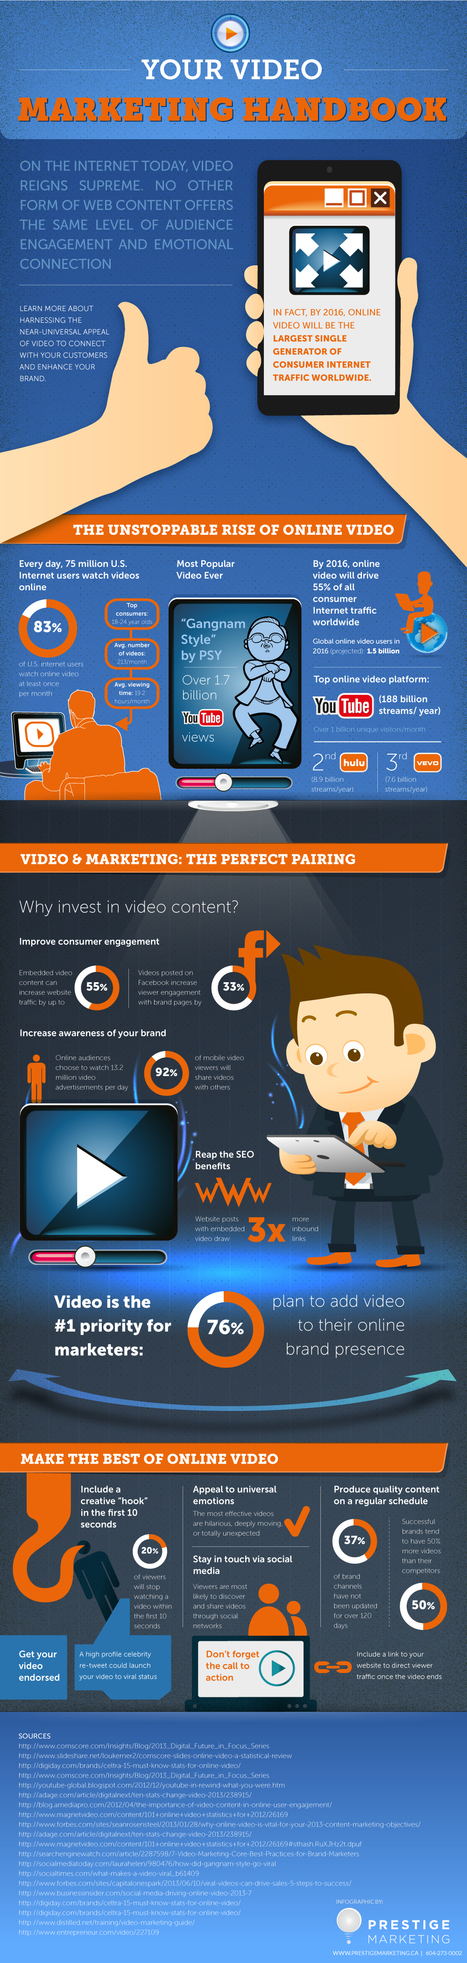 Your Video Marketing Handbook [Infographic] | Social Media e Innovación Tecnológica | Scoop.it